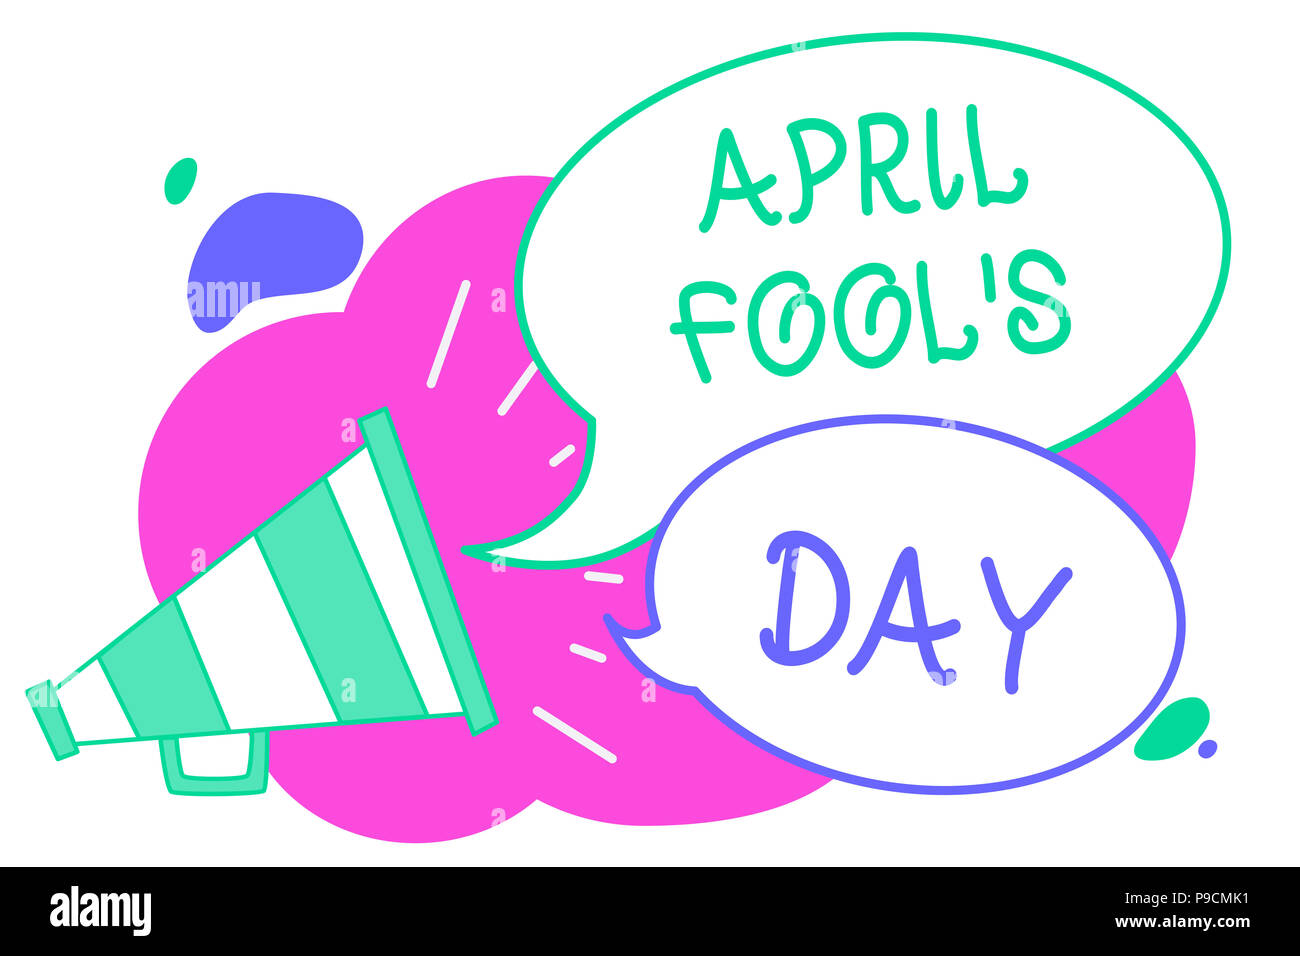 Writing note showing April Fool s is Day. Business photo showcasing Practical jokes humor pranks Celebration funny foolish Creative multiple bubble cl - Stock Image